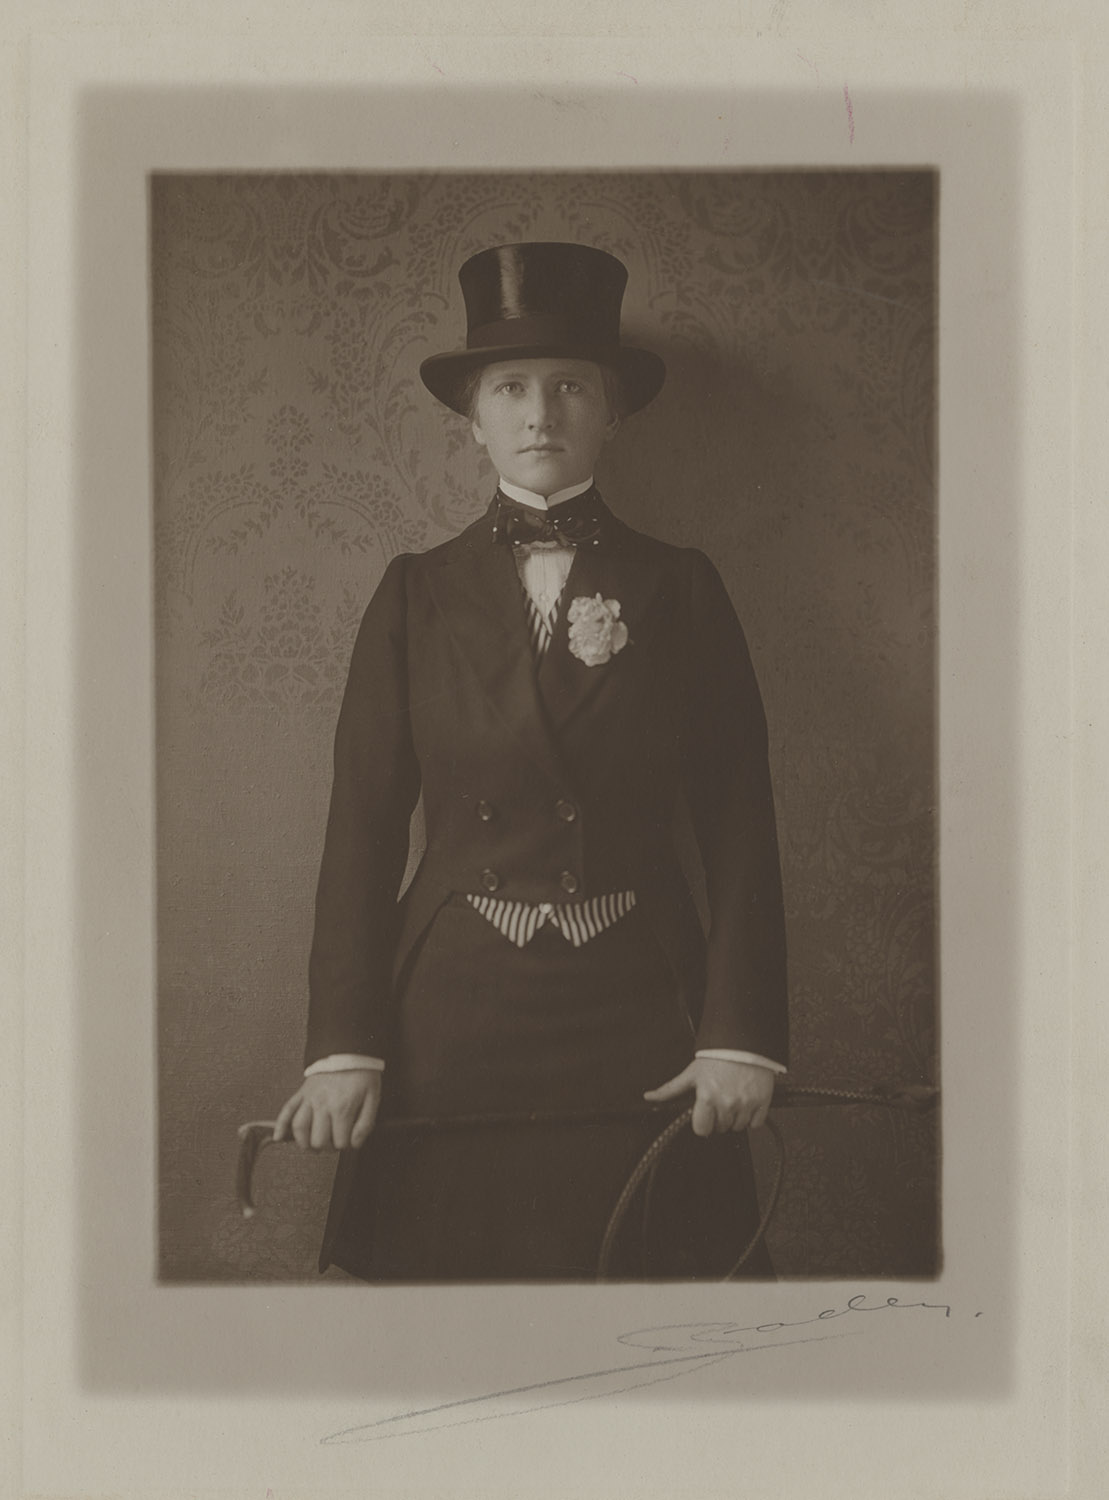 Mary Flinn Lawrence. From the Mary Flinn Lawrence Photographs, MSQ 185, Detre Library & Archives at the History Center.